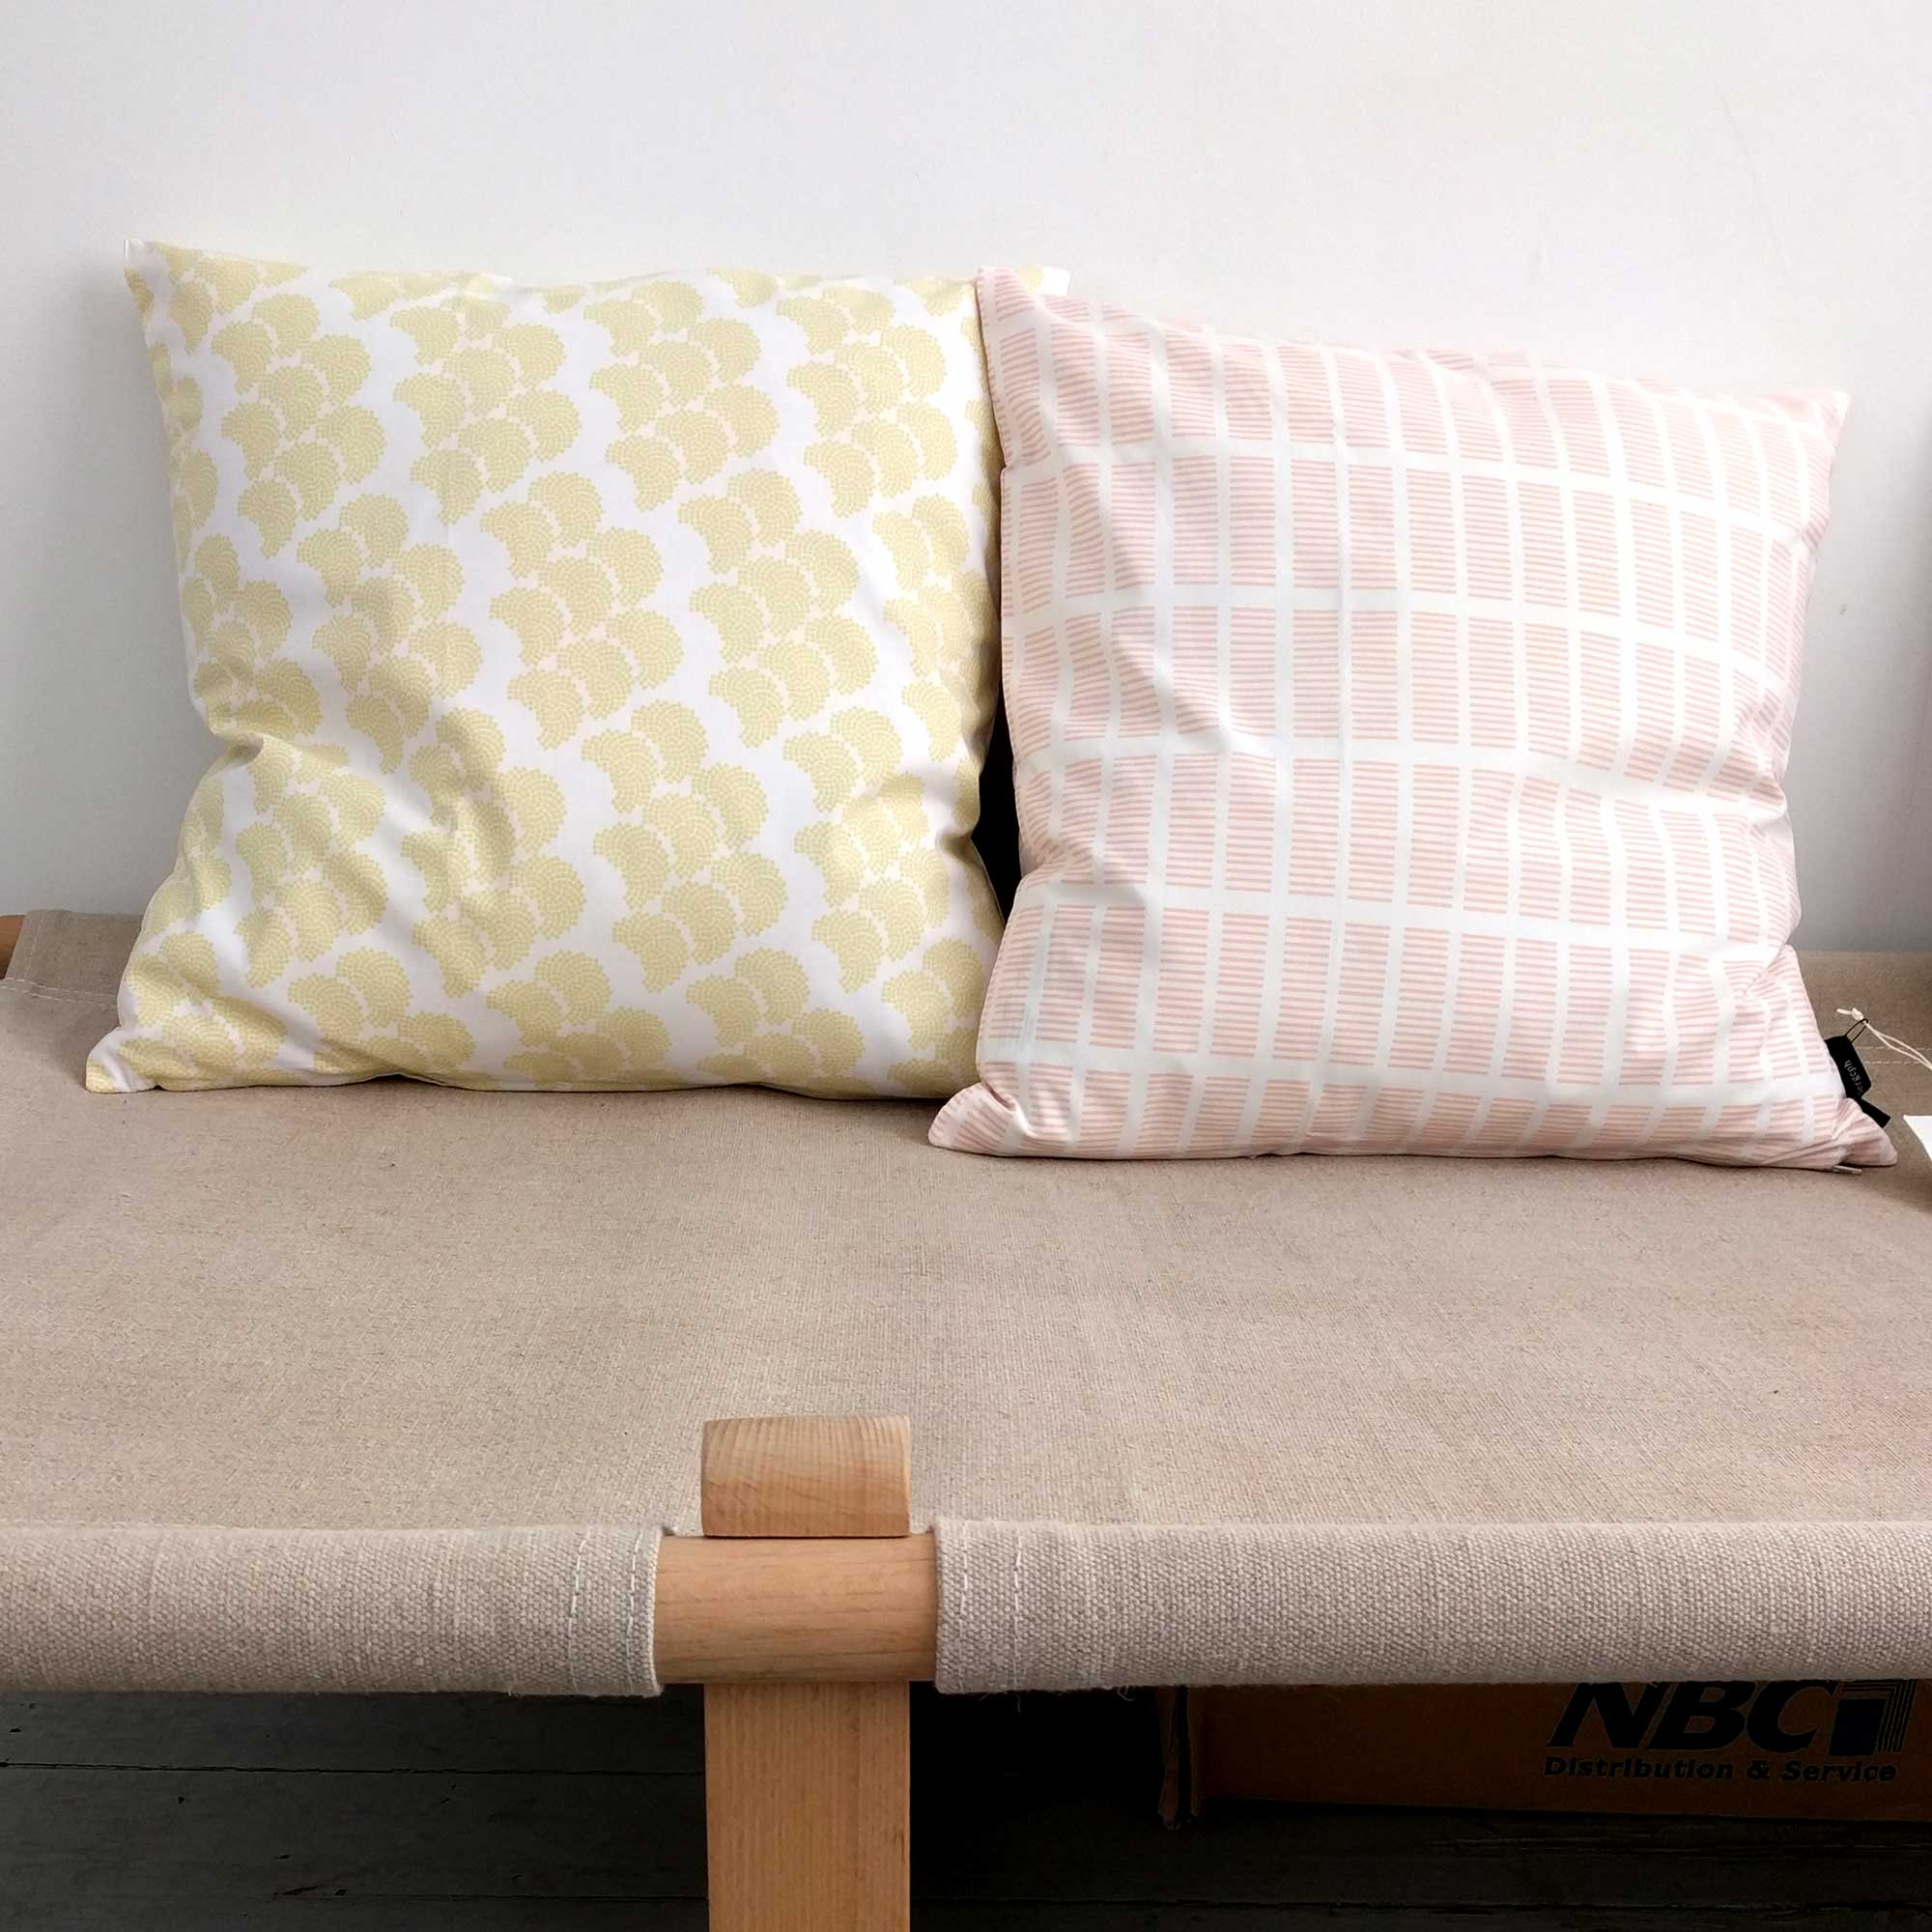 Cushions, organic cotton, design by Anne Rosenberg, RosenbergCph